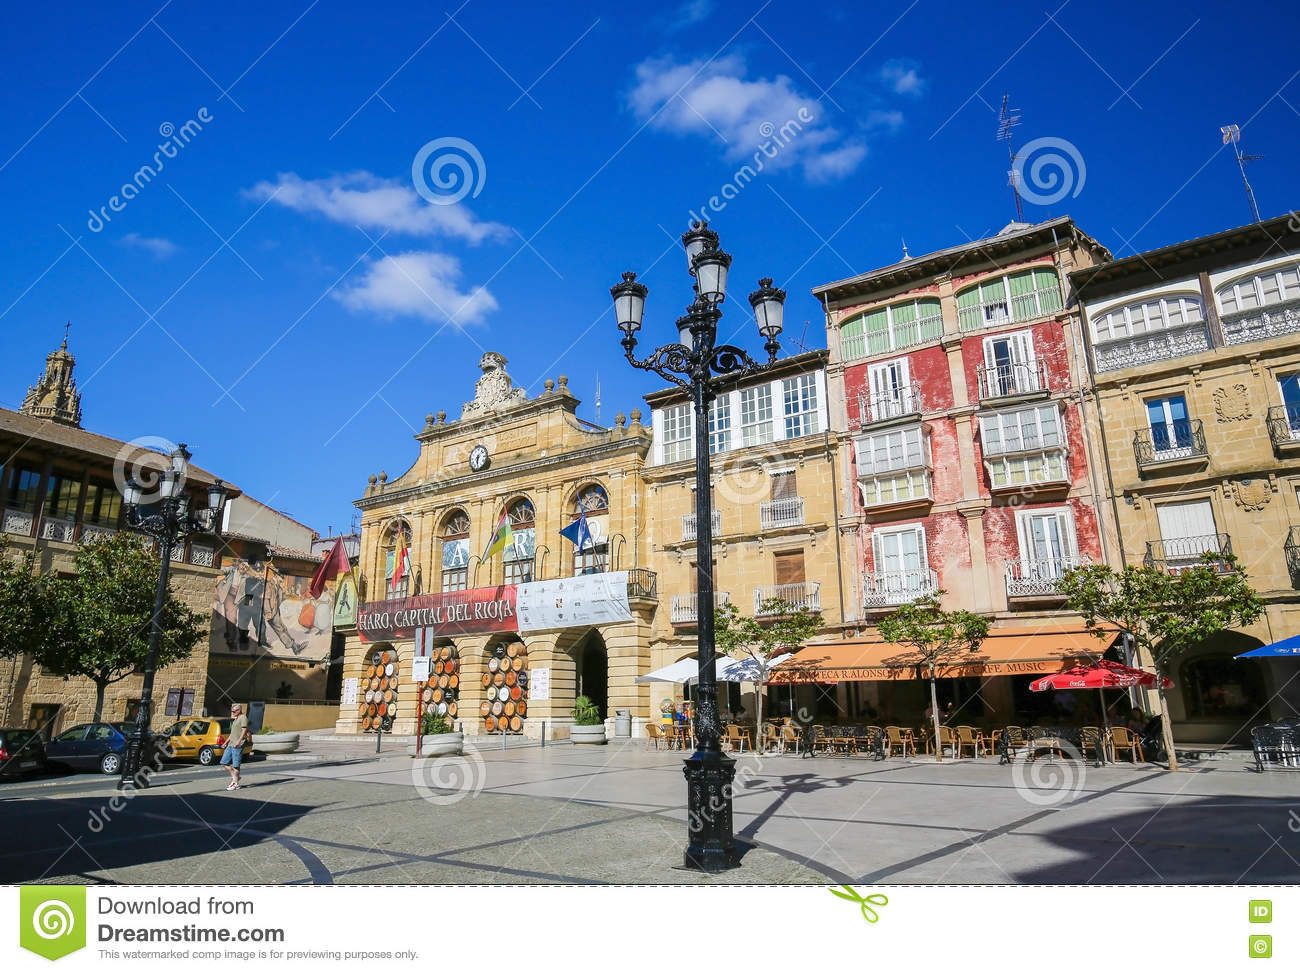 Capital Of Rioja center of haro in la rioja, spain editorial stock image - image of